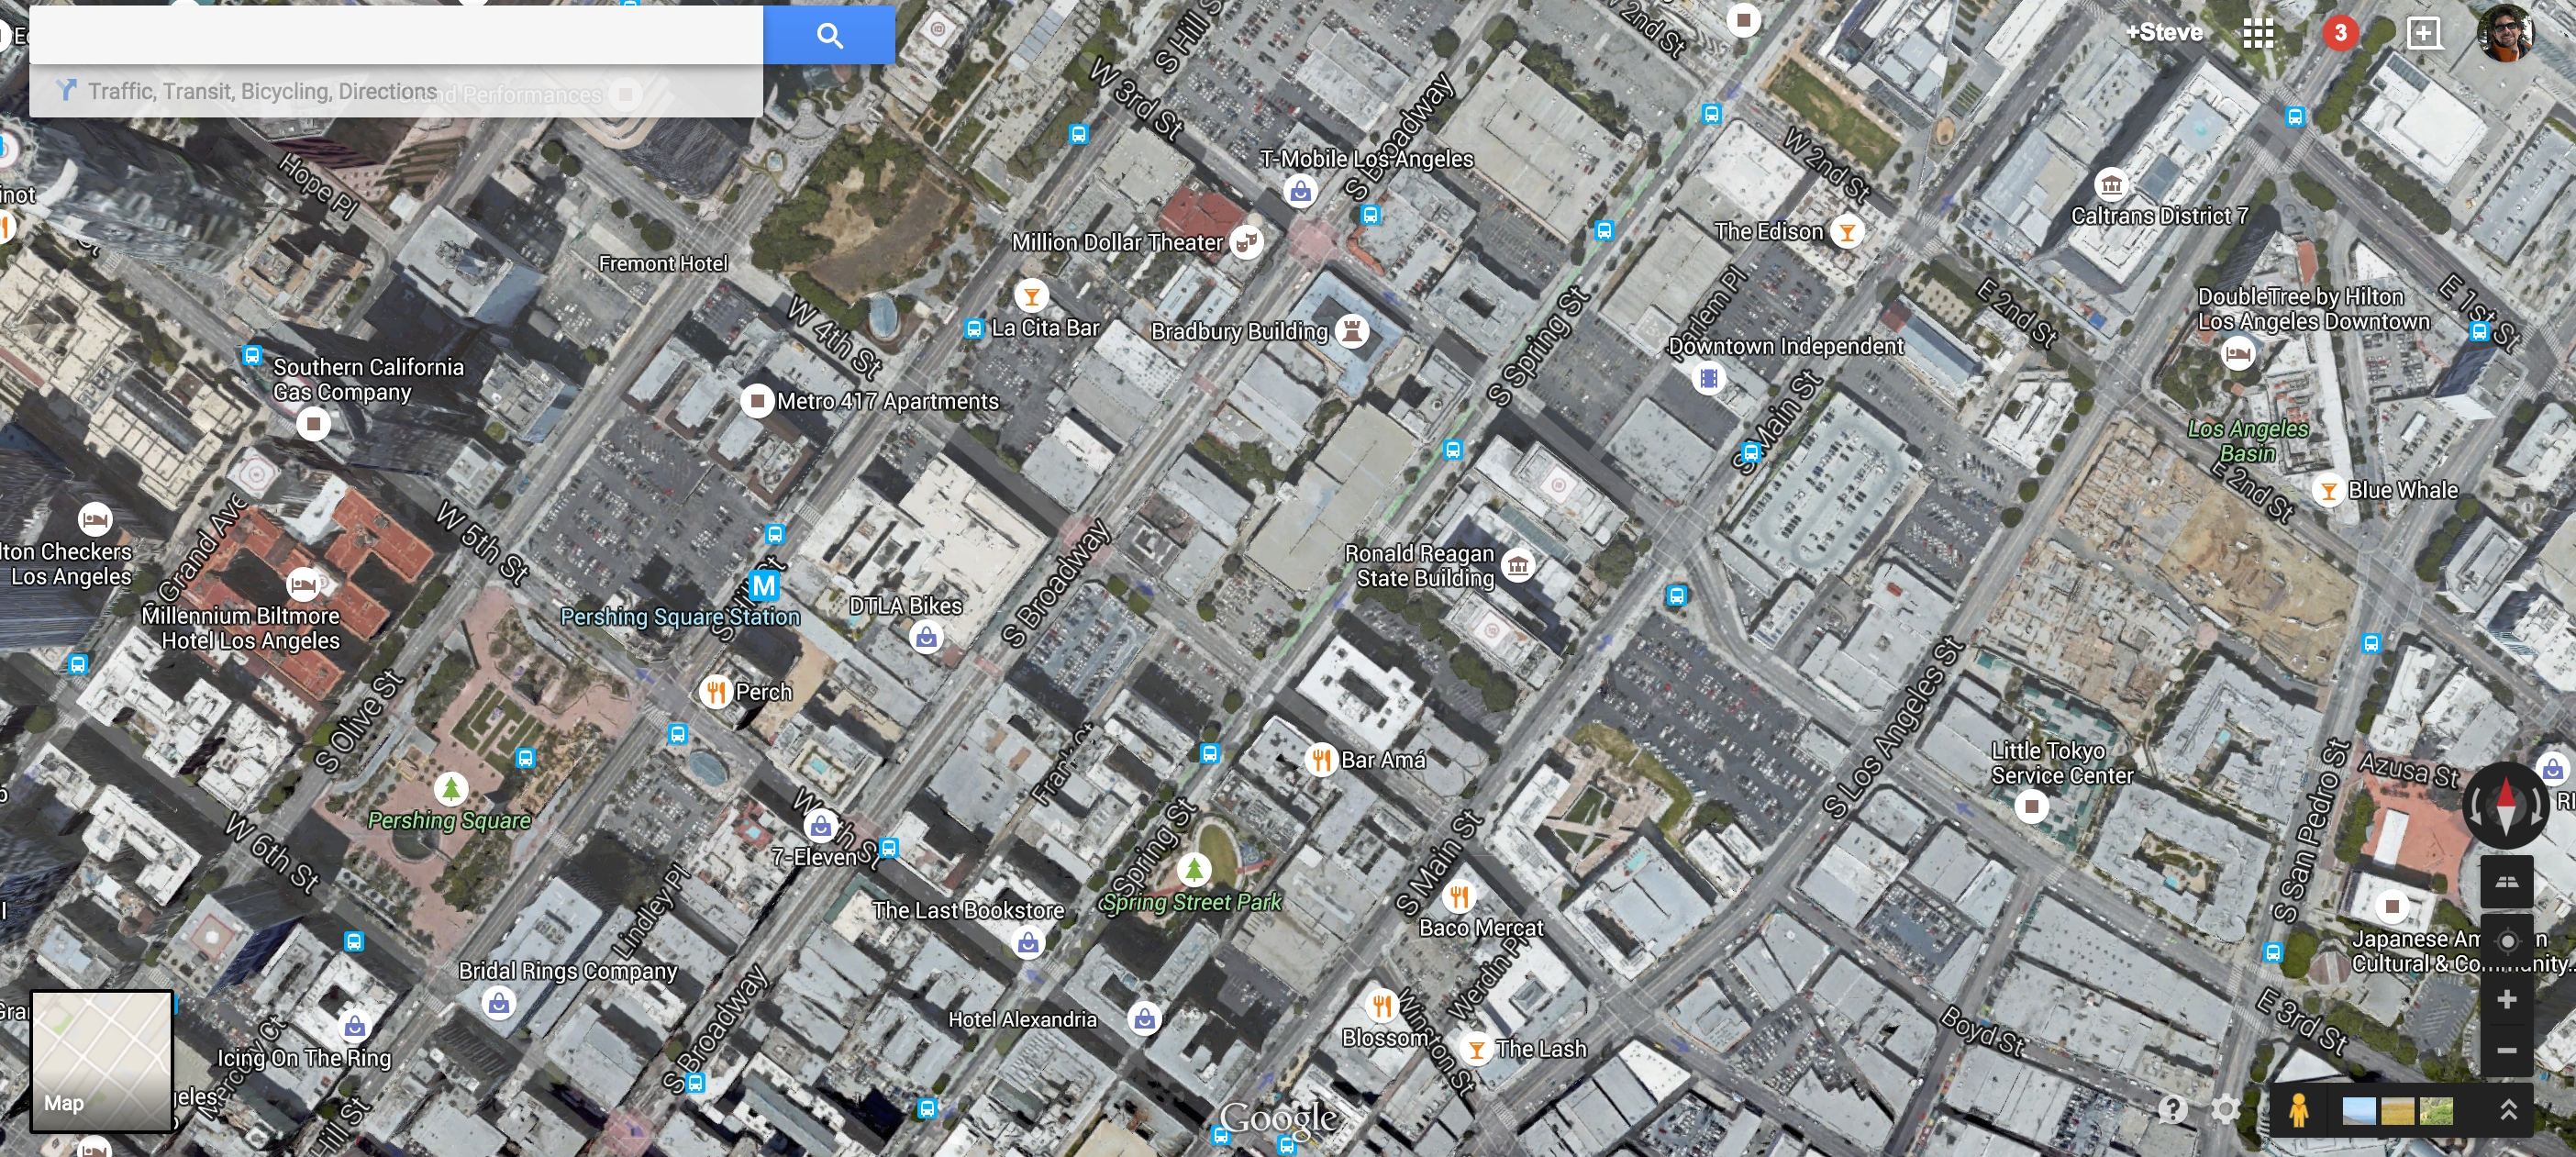 A view of some of DTLA and its plentiful parking lots via Google Maps.